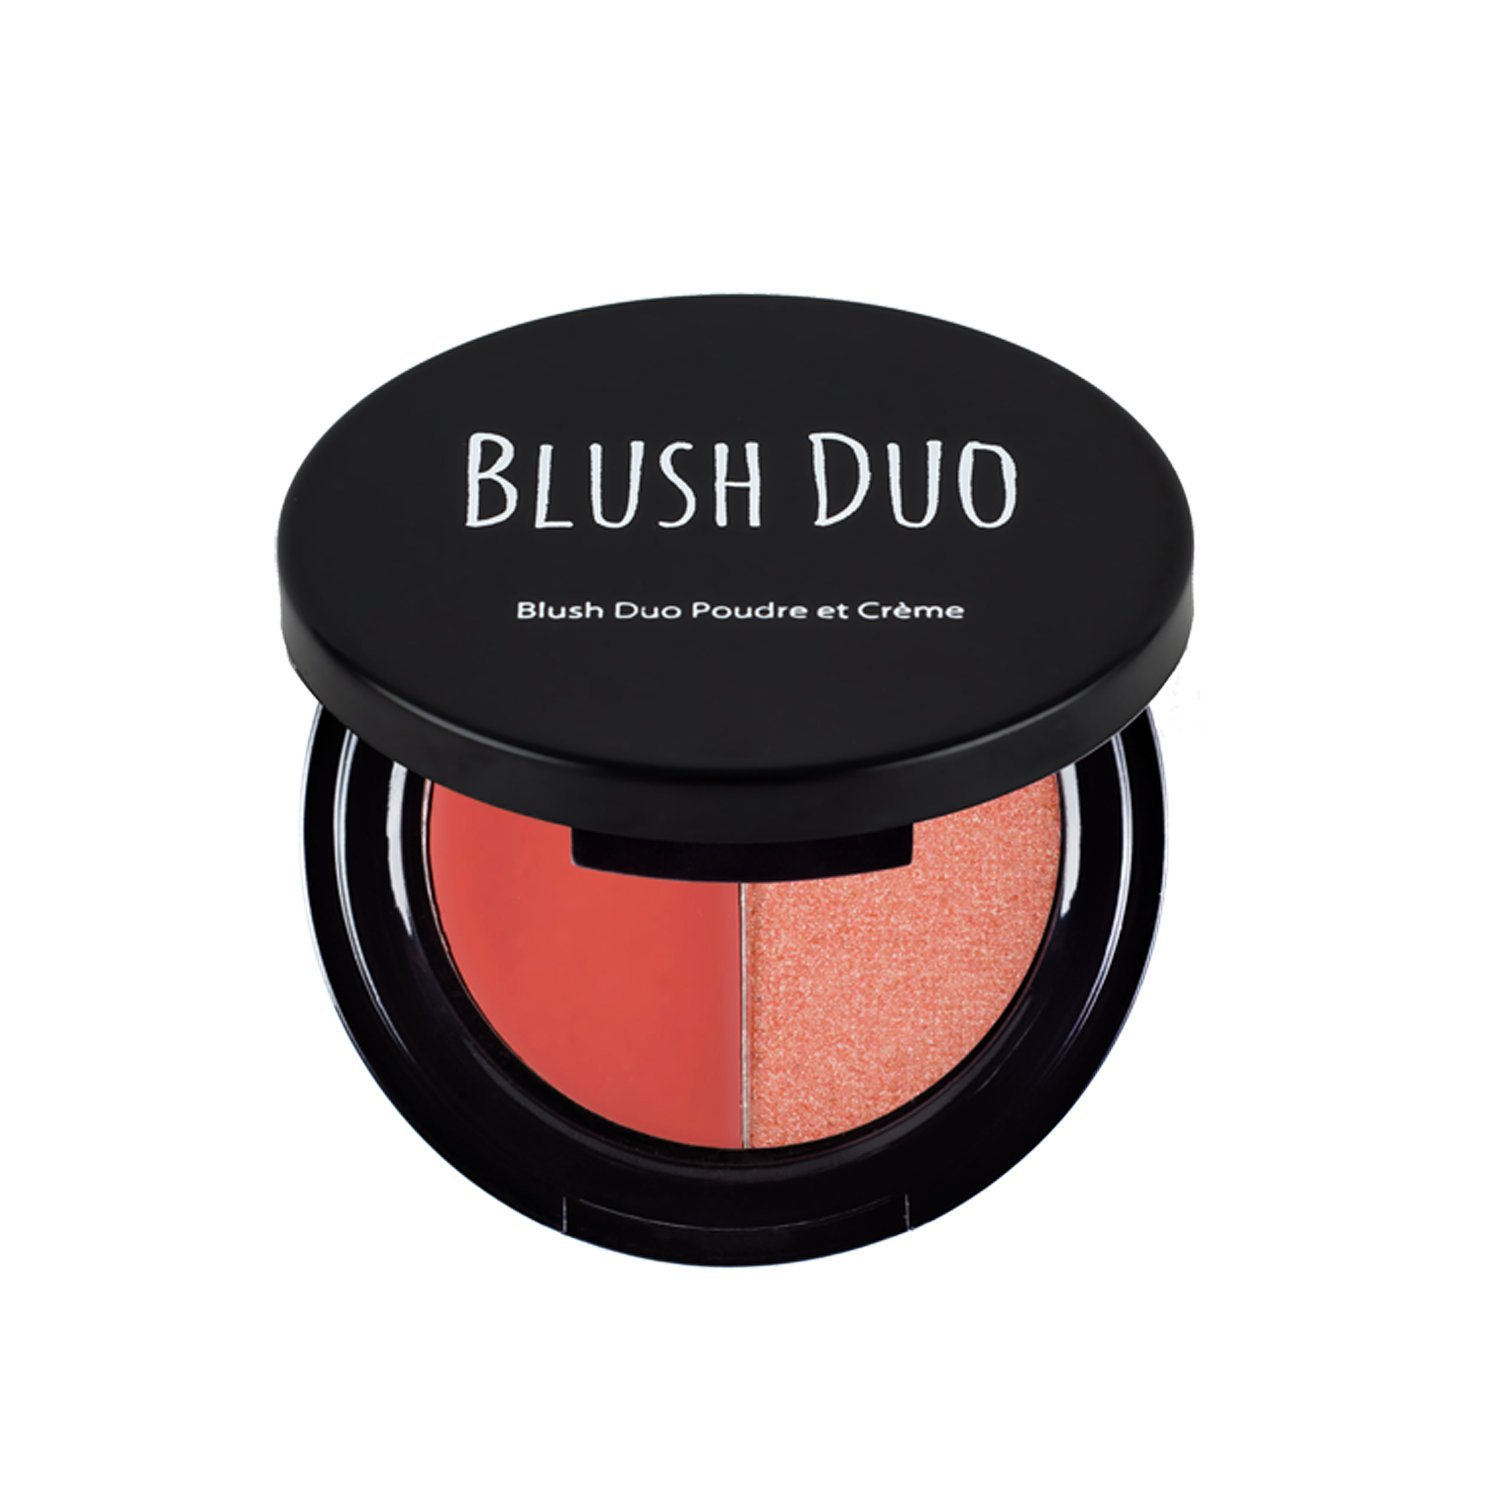 The Beauty Crop - Blush Duo - Papaya Don't Preach | Cream and Pressed Powder | Nourished with Kale, Aronia Berry, Pomegranate and Papaya | Cosmetics Pink Highlighter | Cream Blush Duo | Cruelty-Free